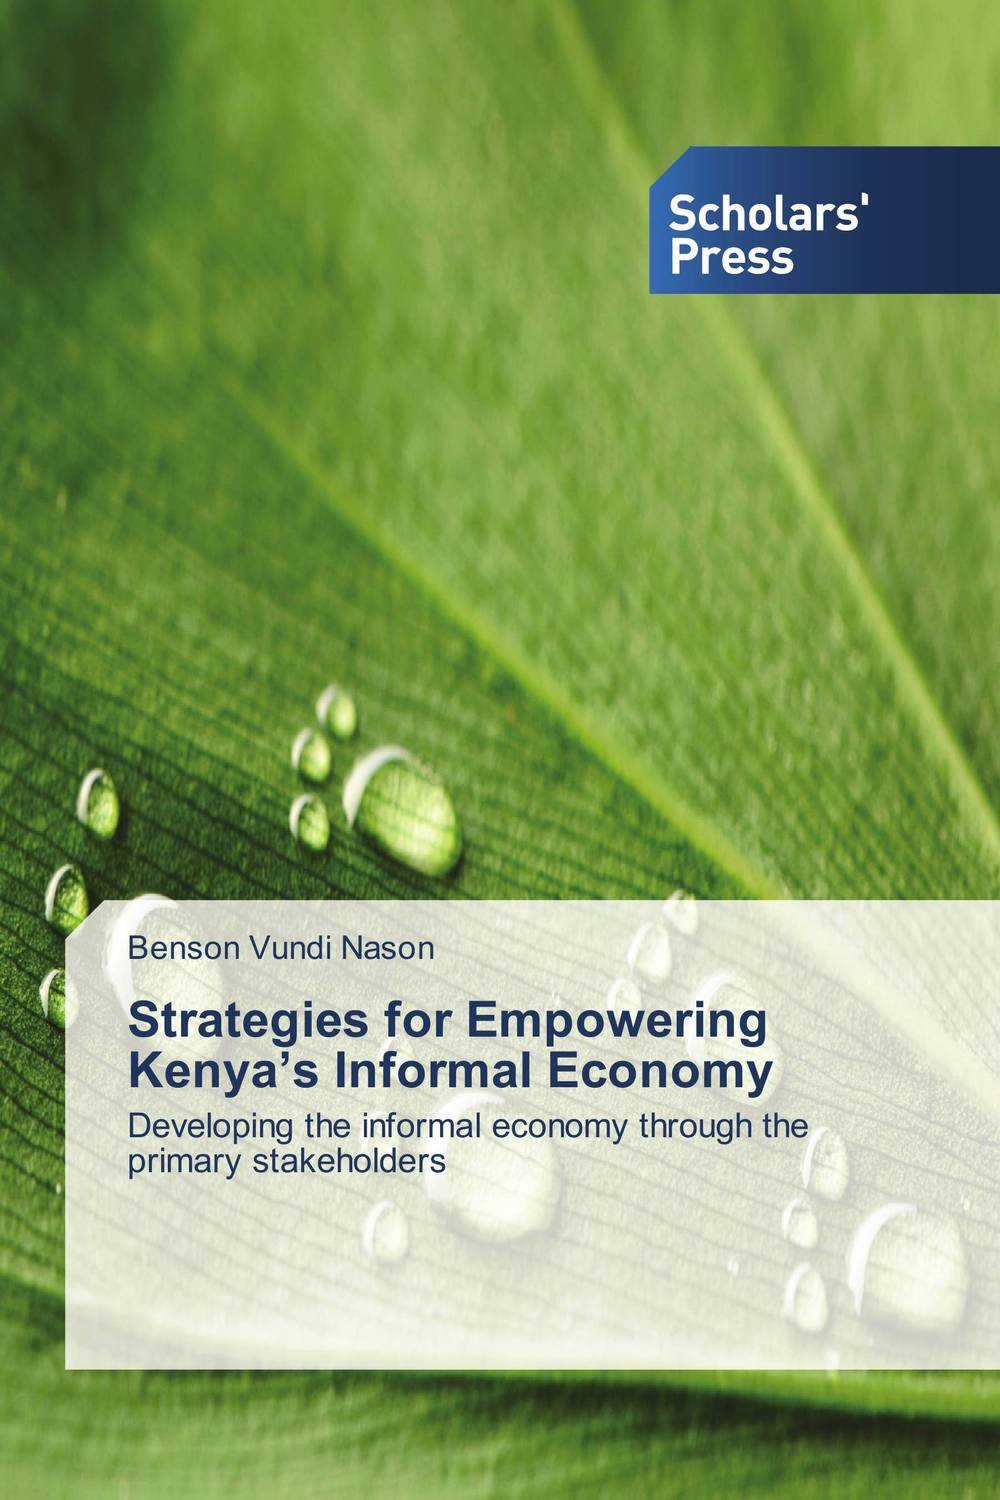 Strategies for Empowering Kenya's Informal Economy johan coetsee change lessons from the ceo real people real change